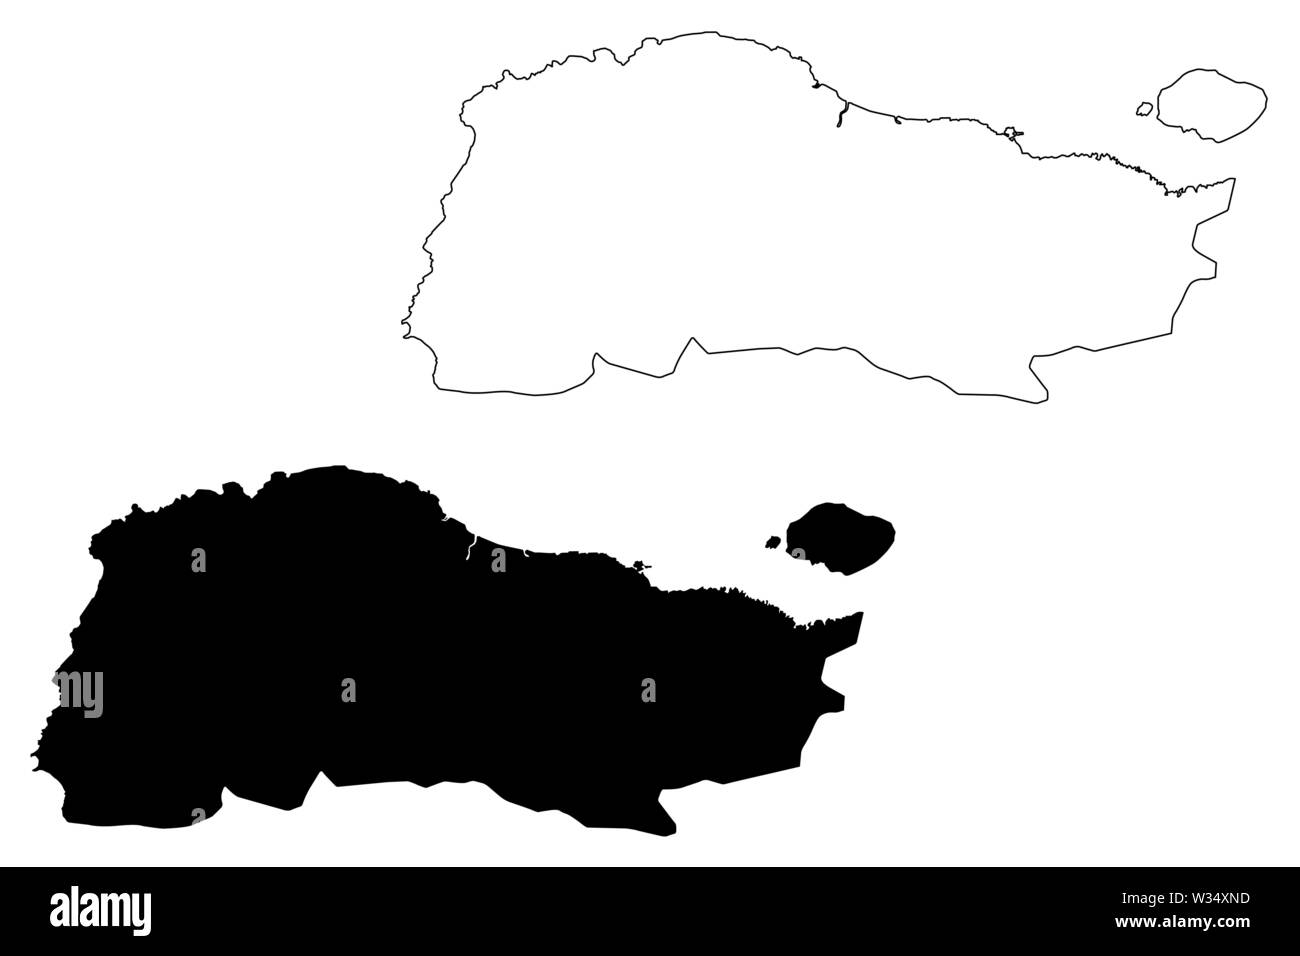 GrandAnse department (Republic of Haiti, Hayti, Hispaniola, Departments of Haiti) map vector illustration, scribble sketch Grand'Anse map Stock Vector